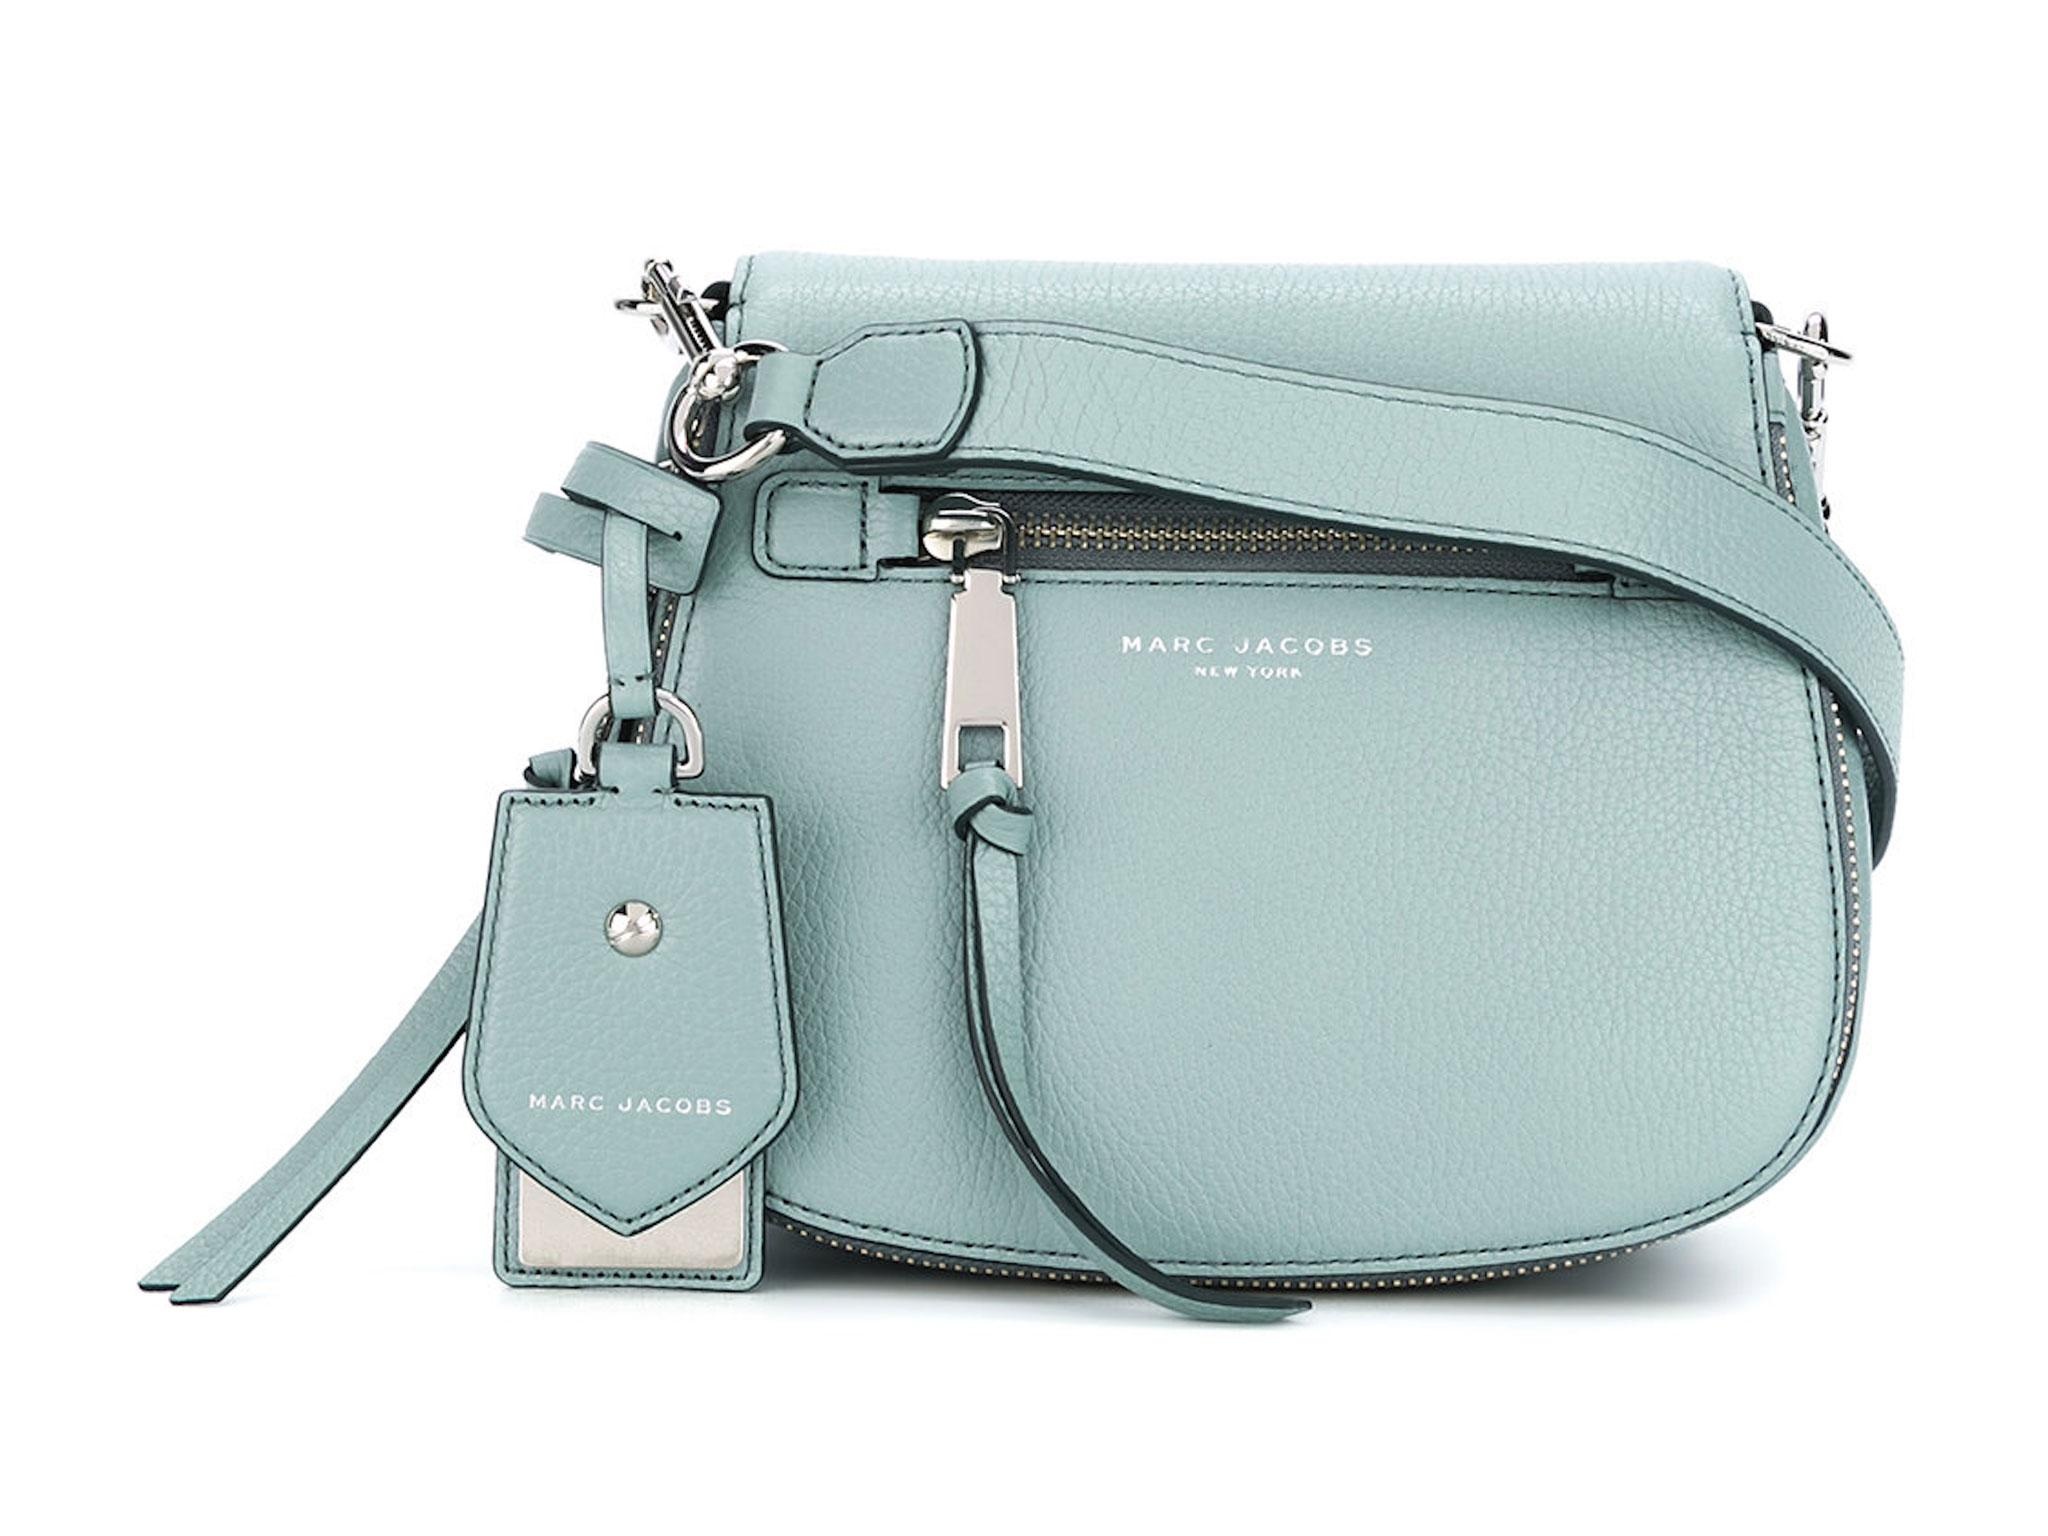 11be557b7e4752 We love the icy blue colour of this small satchel bag from Marc Jacobs that  just oozes springtime verve. Fitted with an adjustable, detachable shoulder  ...